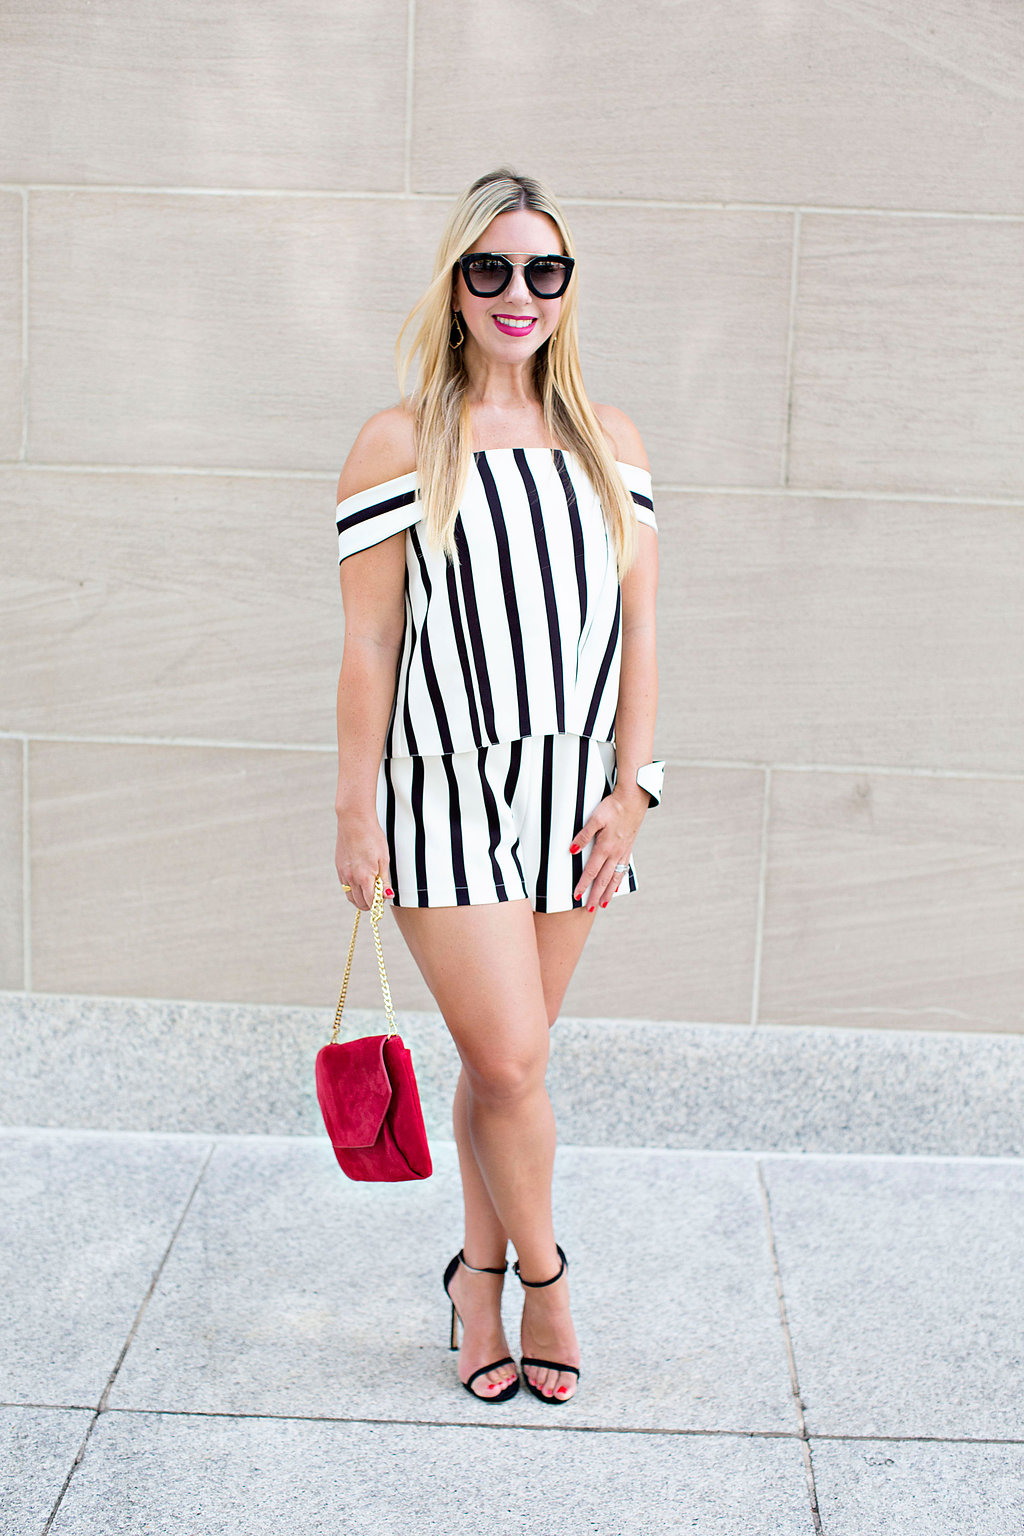 Striped Romper - The Darling Petite Diva Blog